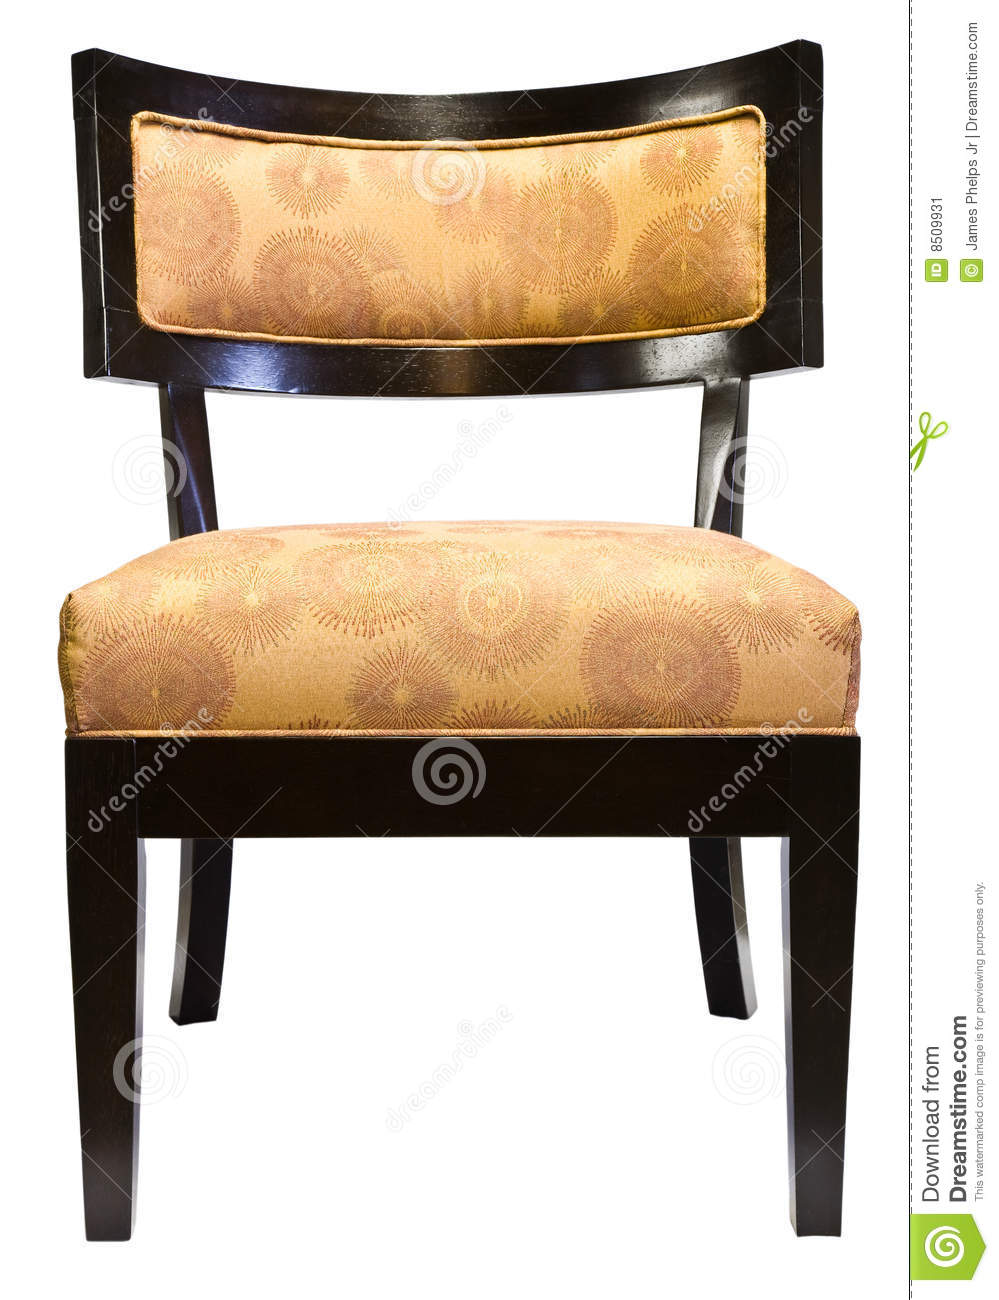 More similar stock images of contemporary accent living room chair